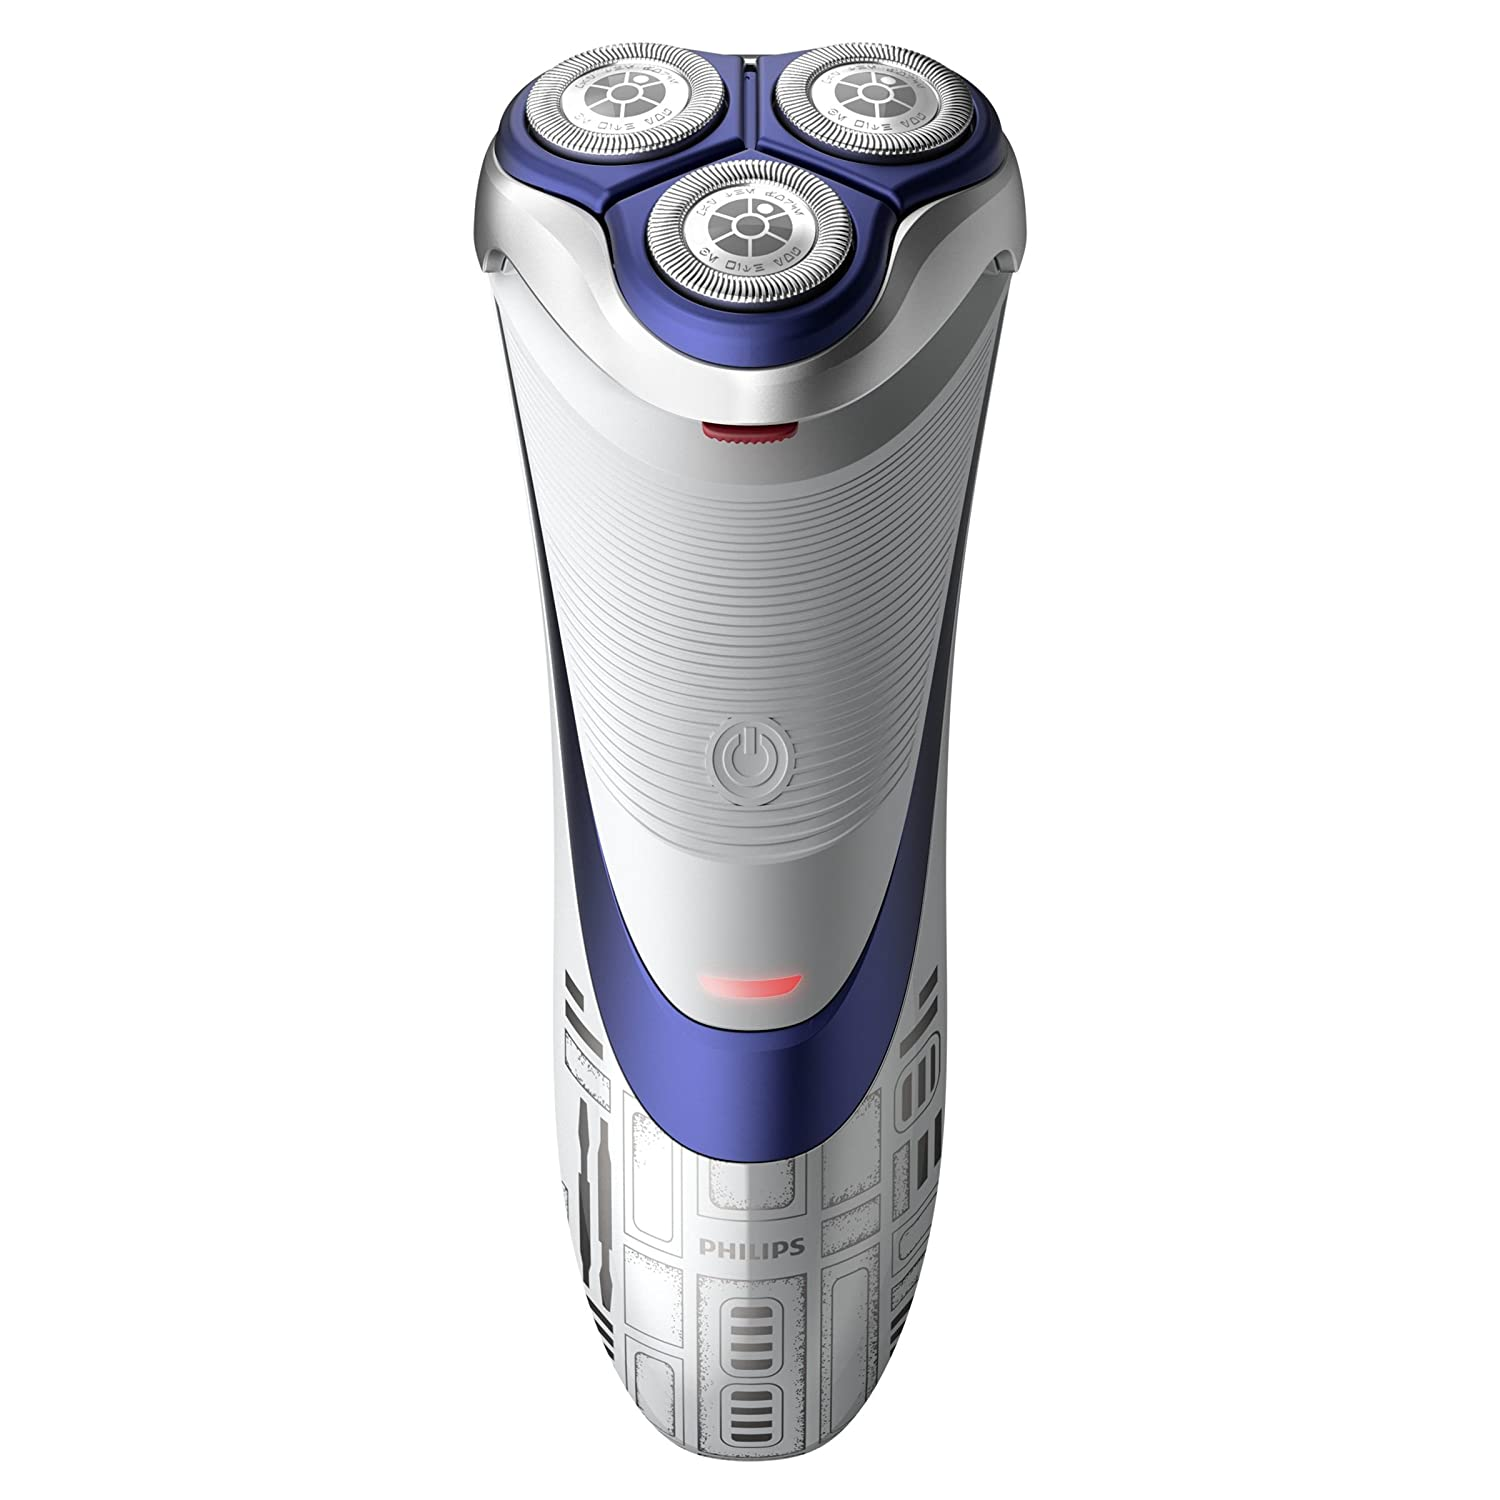 Philips Star Wars R2d2 Shaver Dry Electric Shaver Sw3700/87, 1 Count